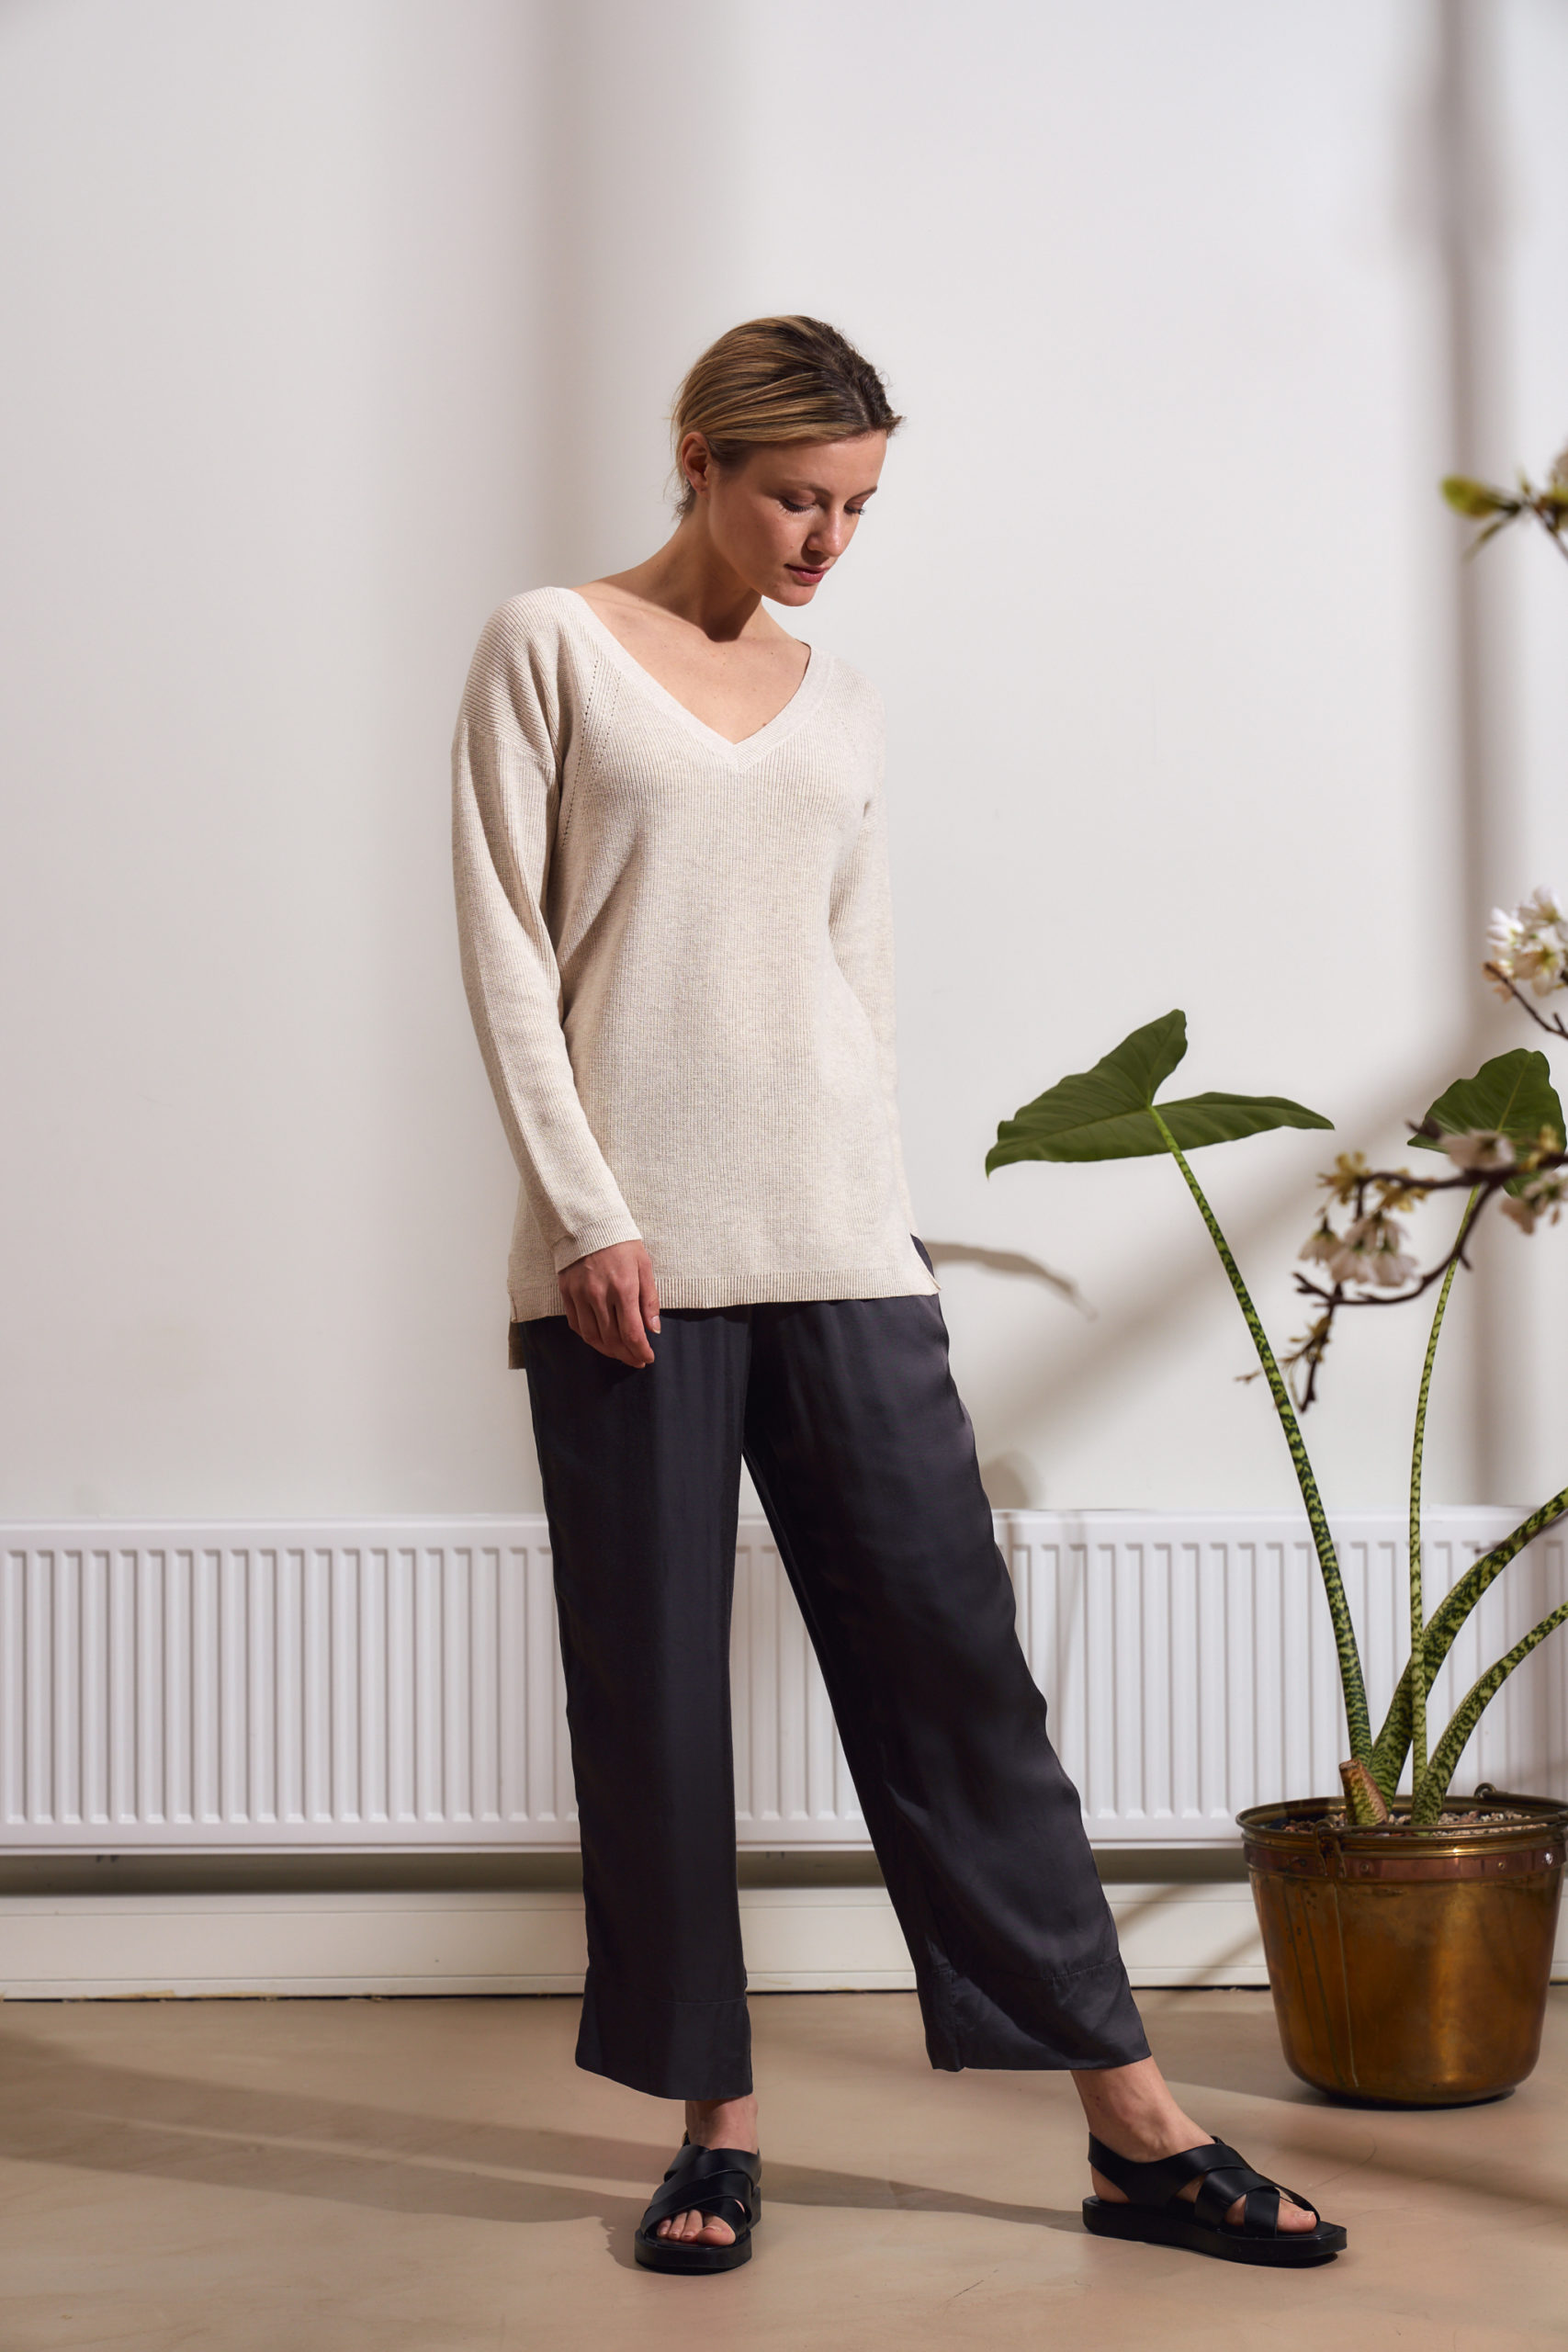 Knit-ted_S20-Shot19-367